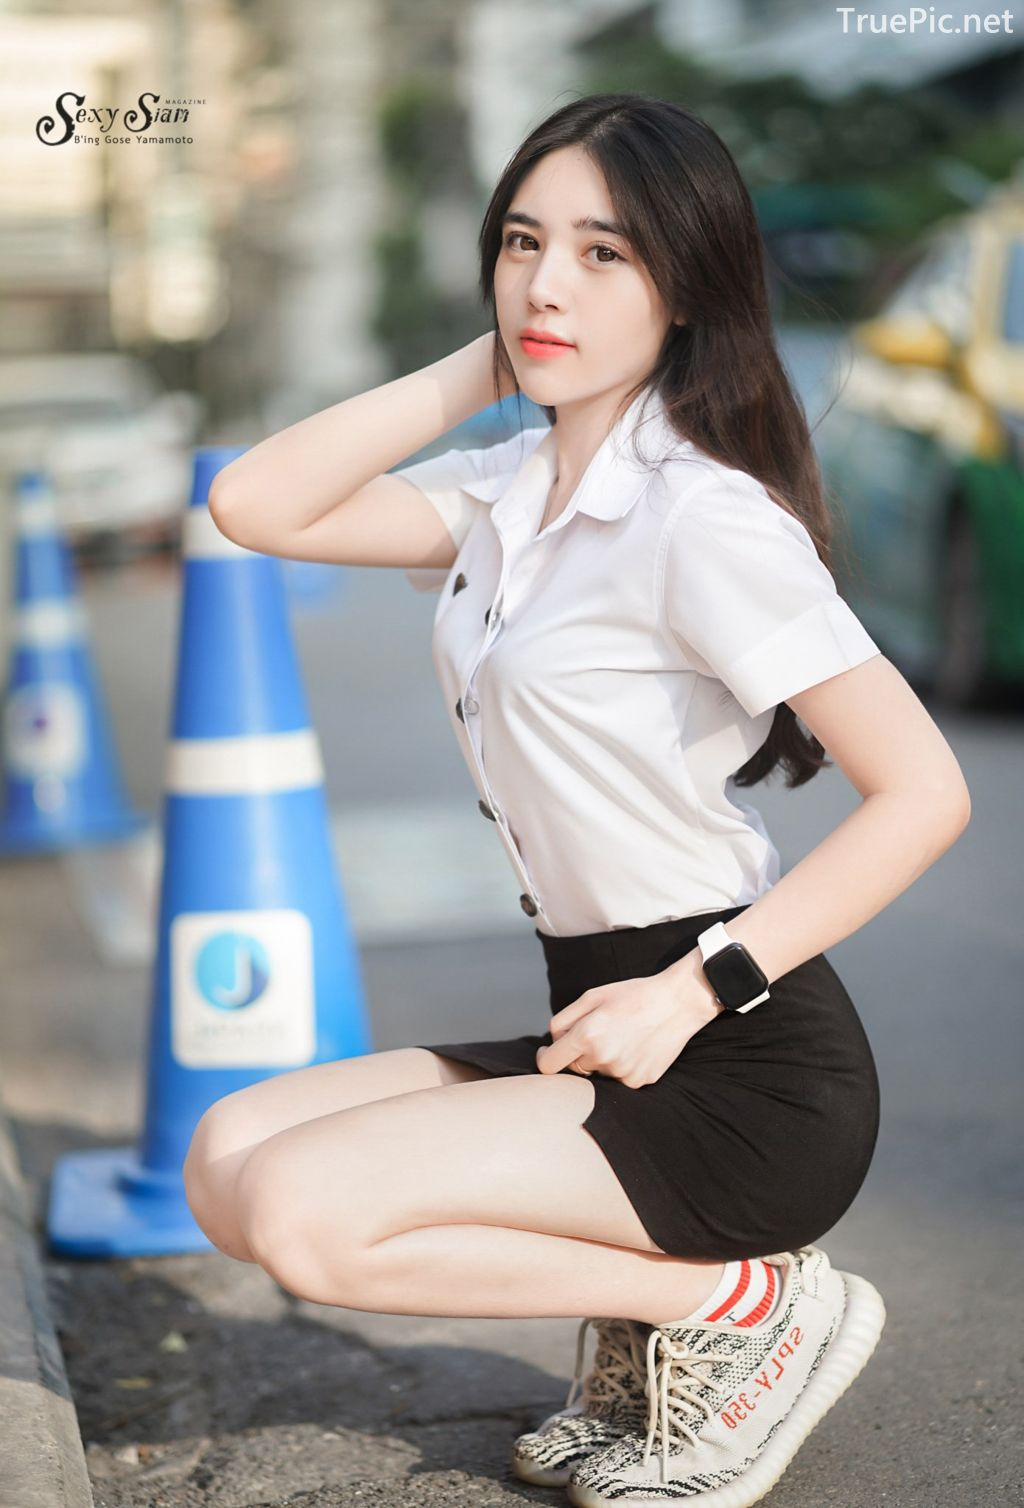 Thailand beautiful girl - Chonticha Chalimewong - Thai Girl Student uniform - TruePic.net - Picture 6